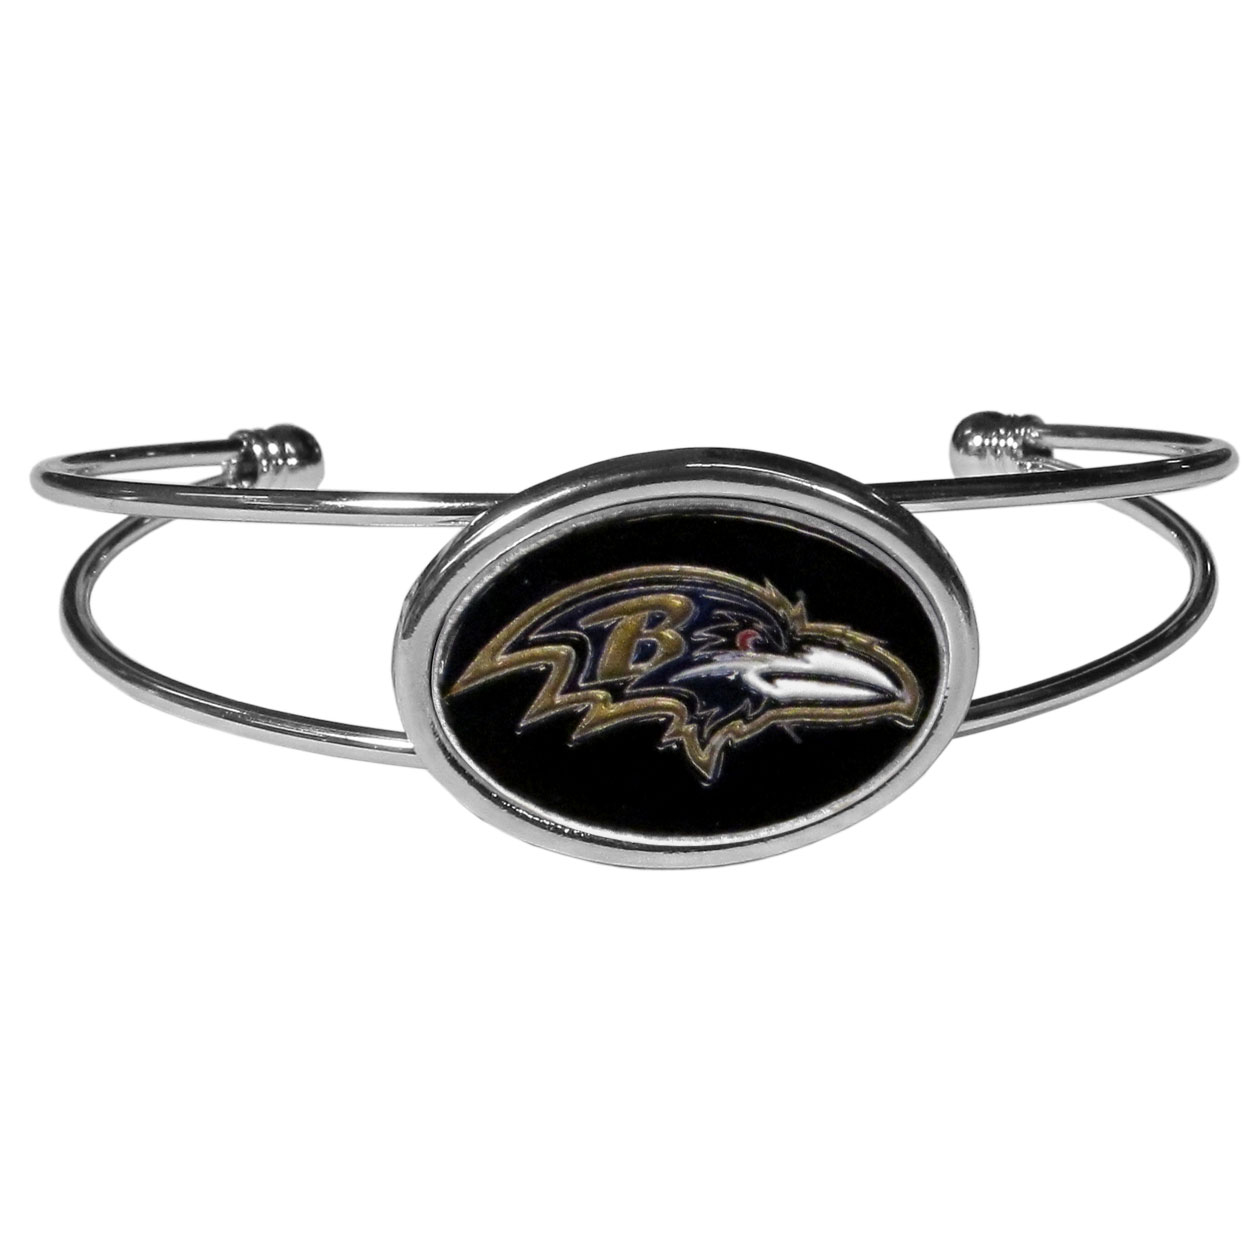 Baltimore Ravens Cuff Bracelet - These comfortable and fashionable double-bar cuff bracelets feature a 1 inch metal Baltimore Ravens inset logo with enameled detail.